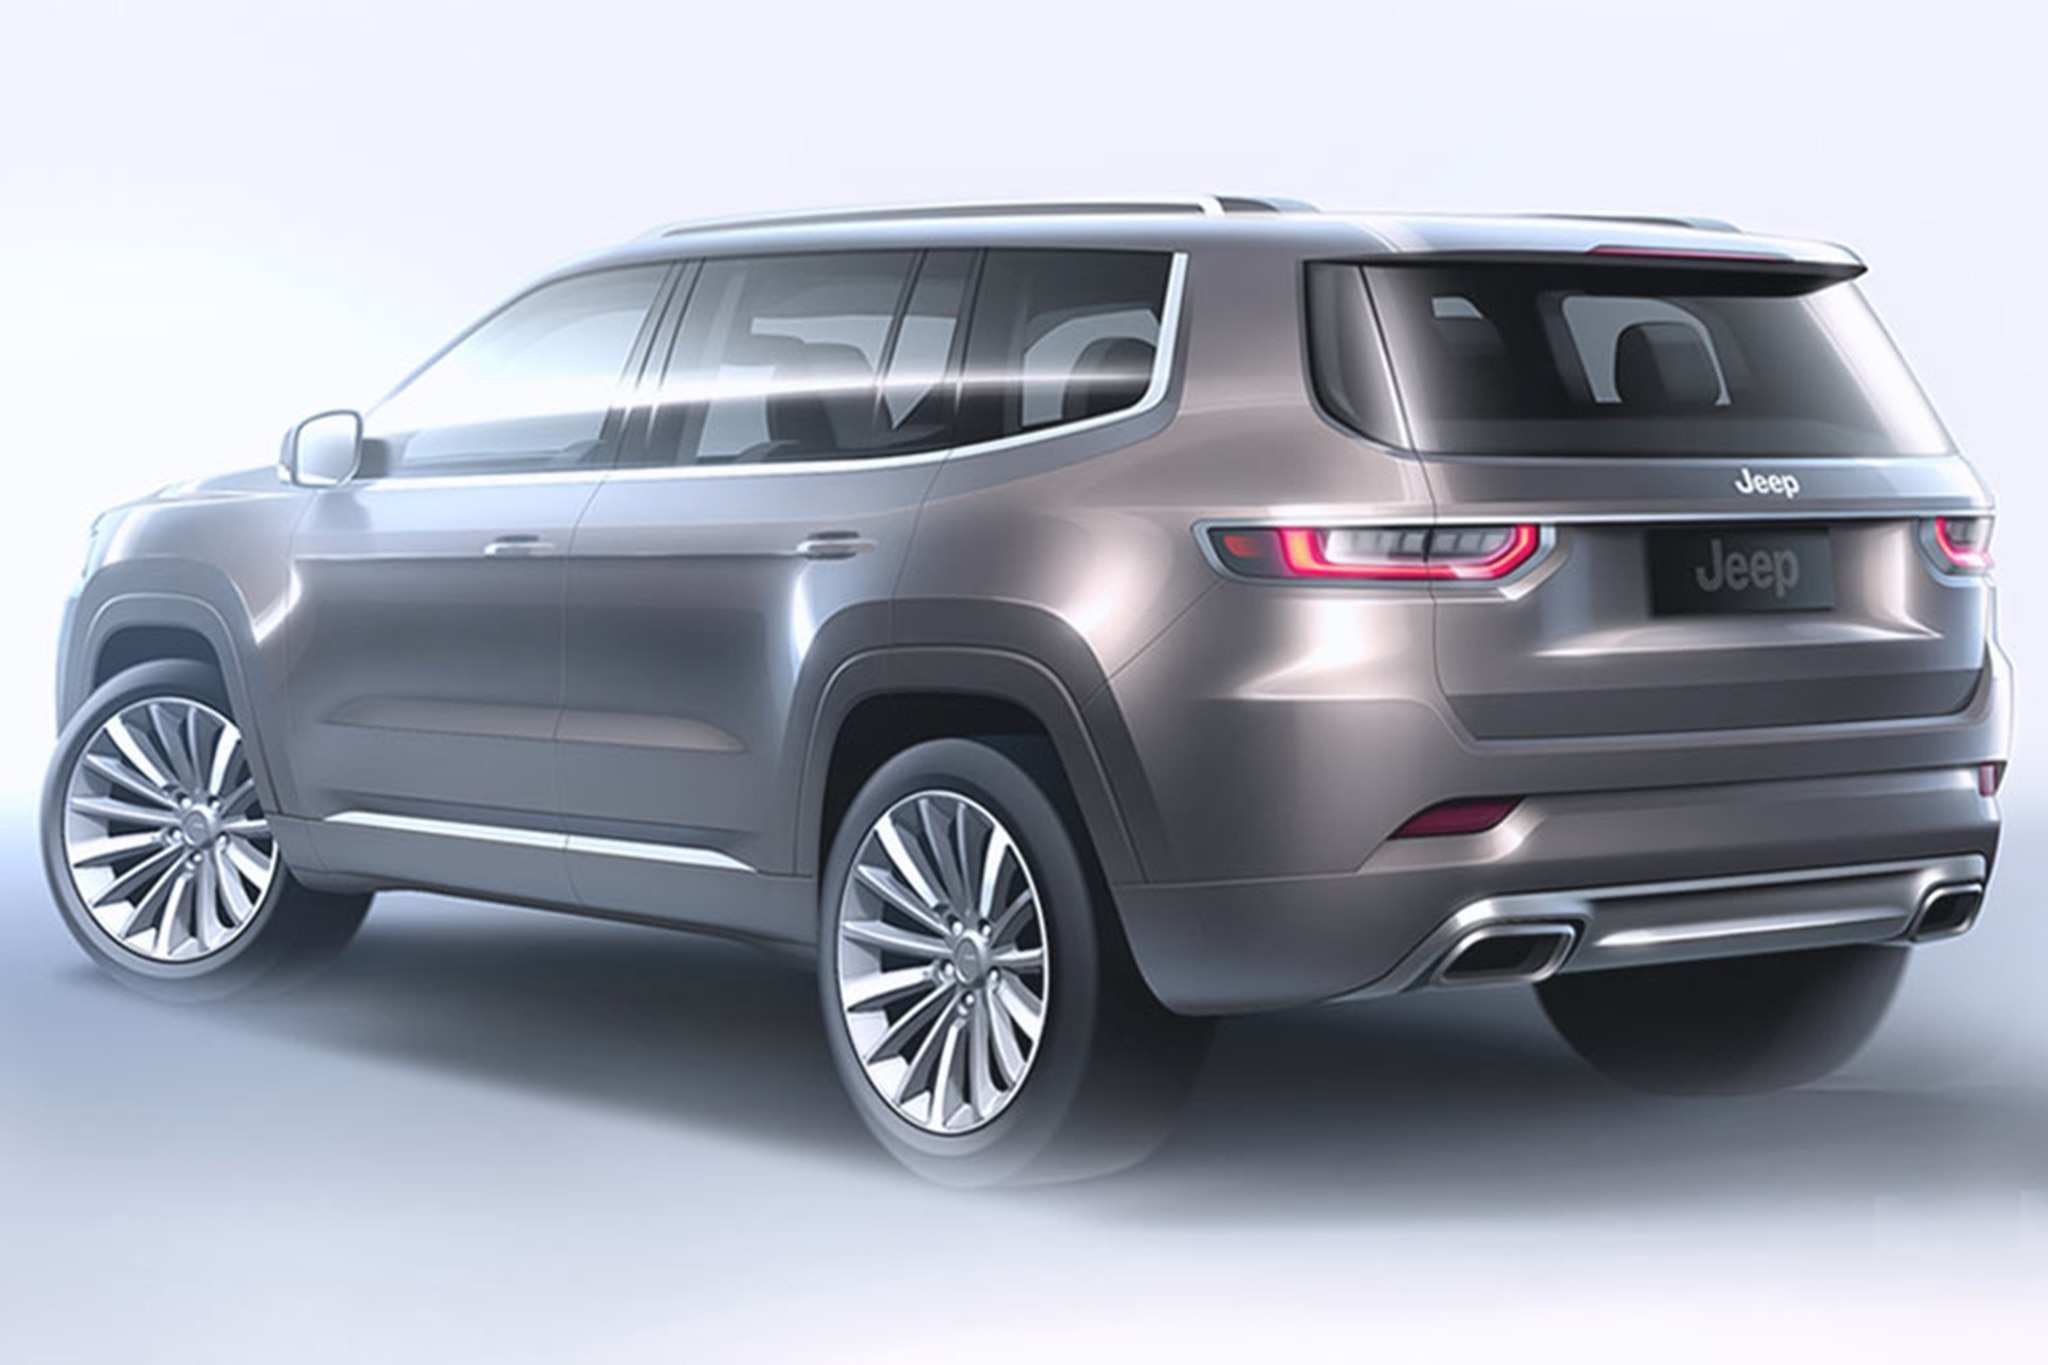 19 Gallery of 2020 Jeep Commander New Concept with 2020 Jeep Commander